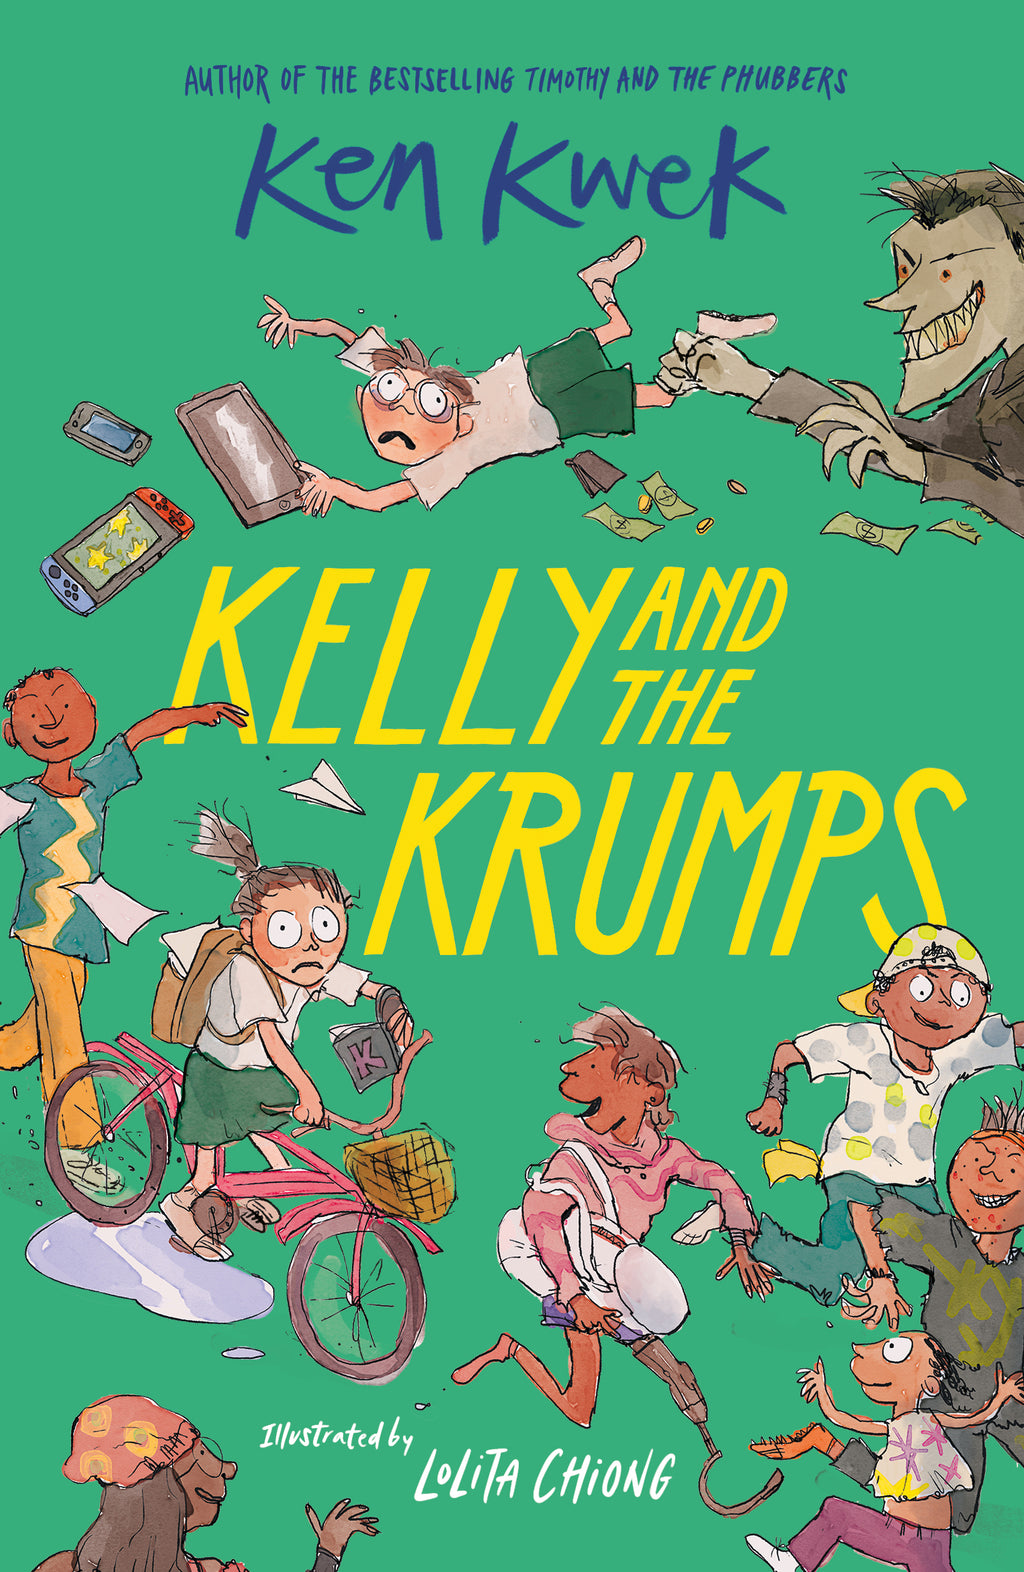 Kelly and the Krumps